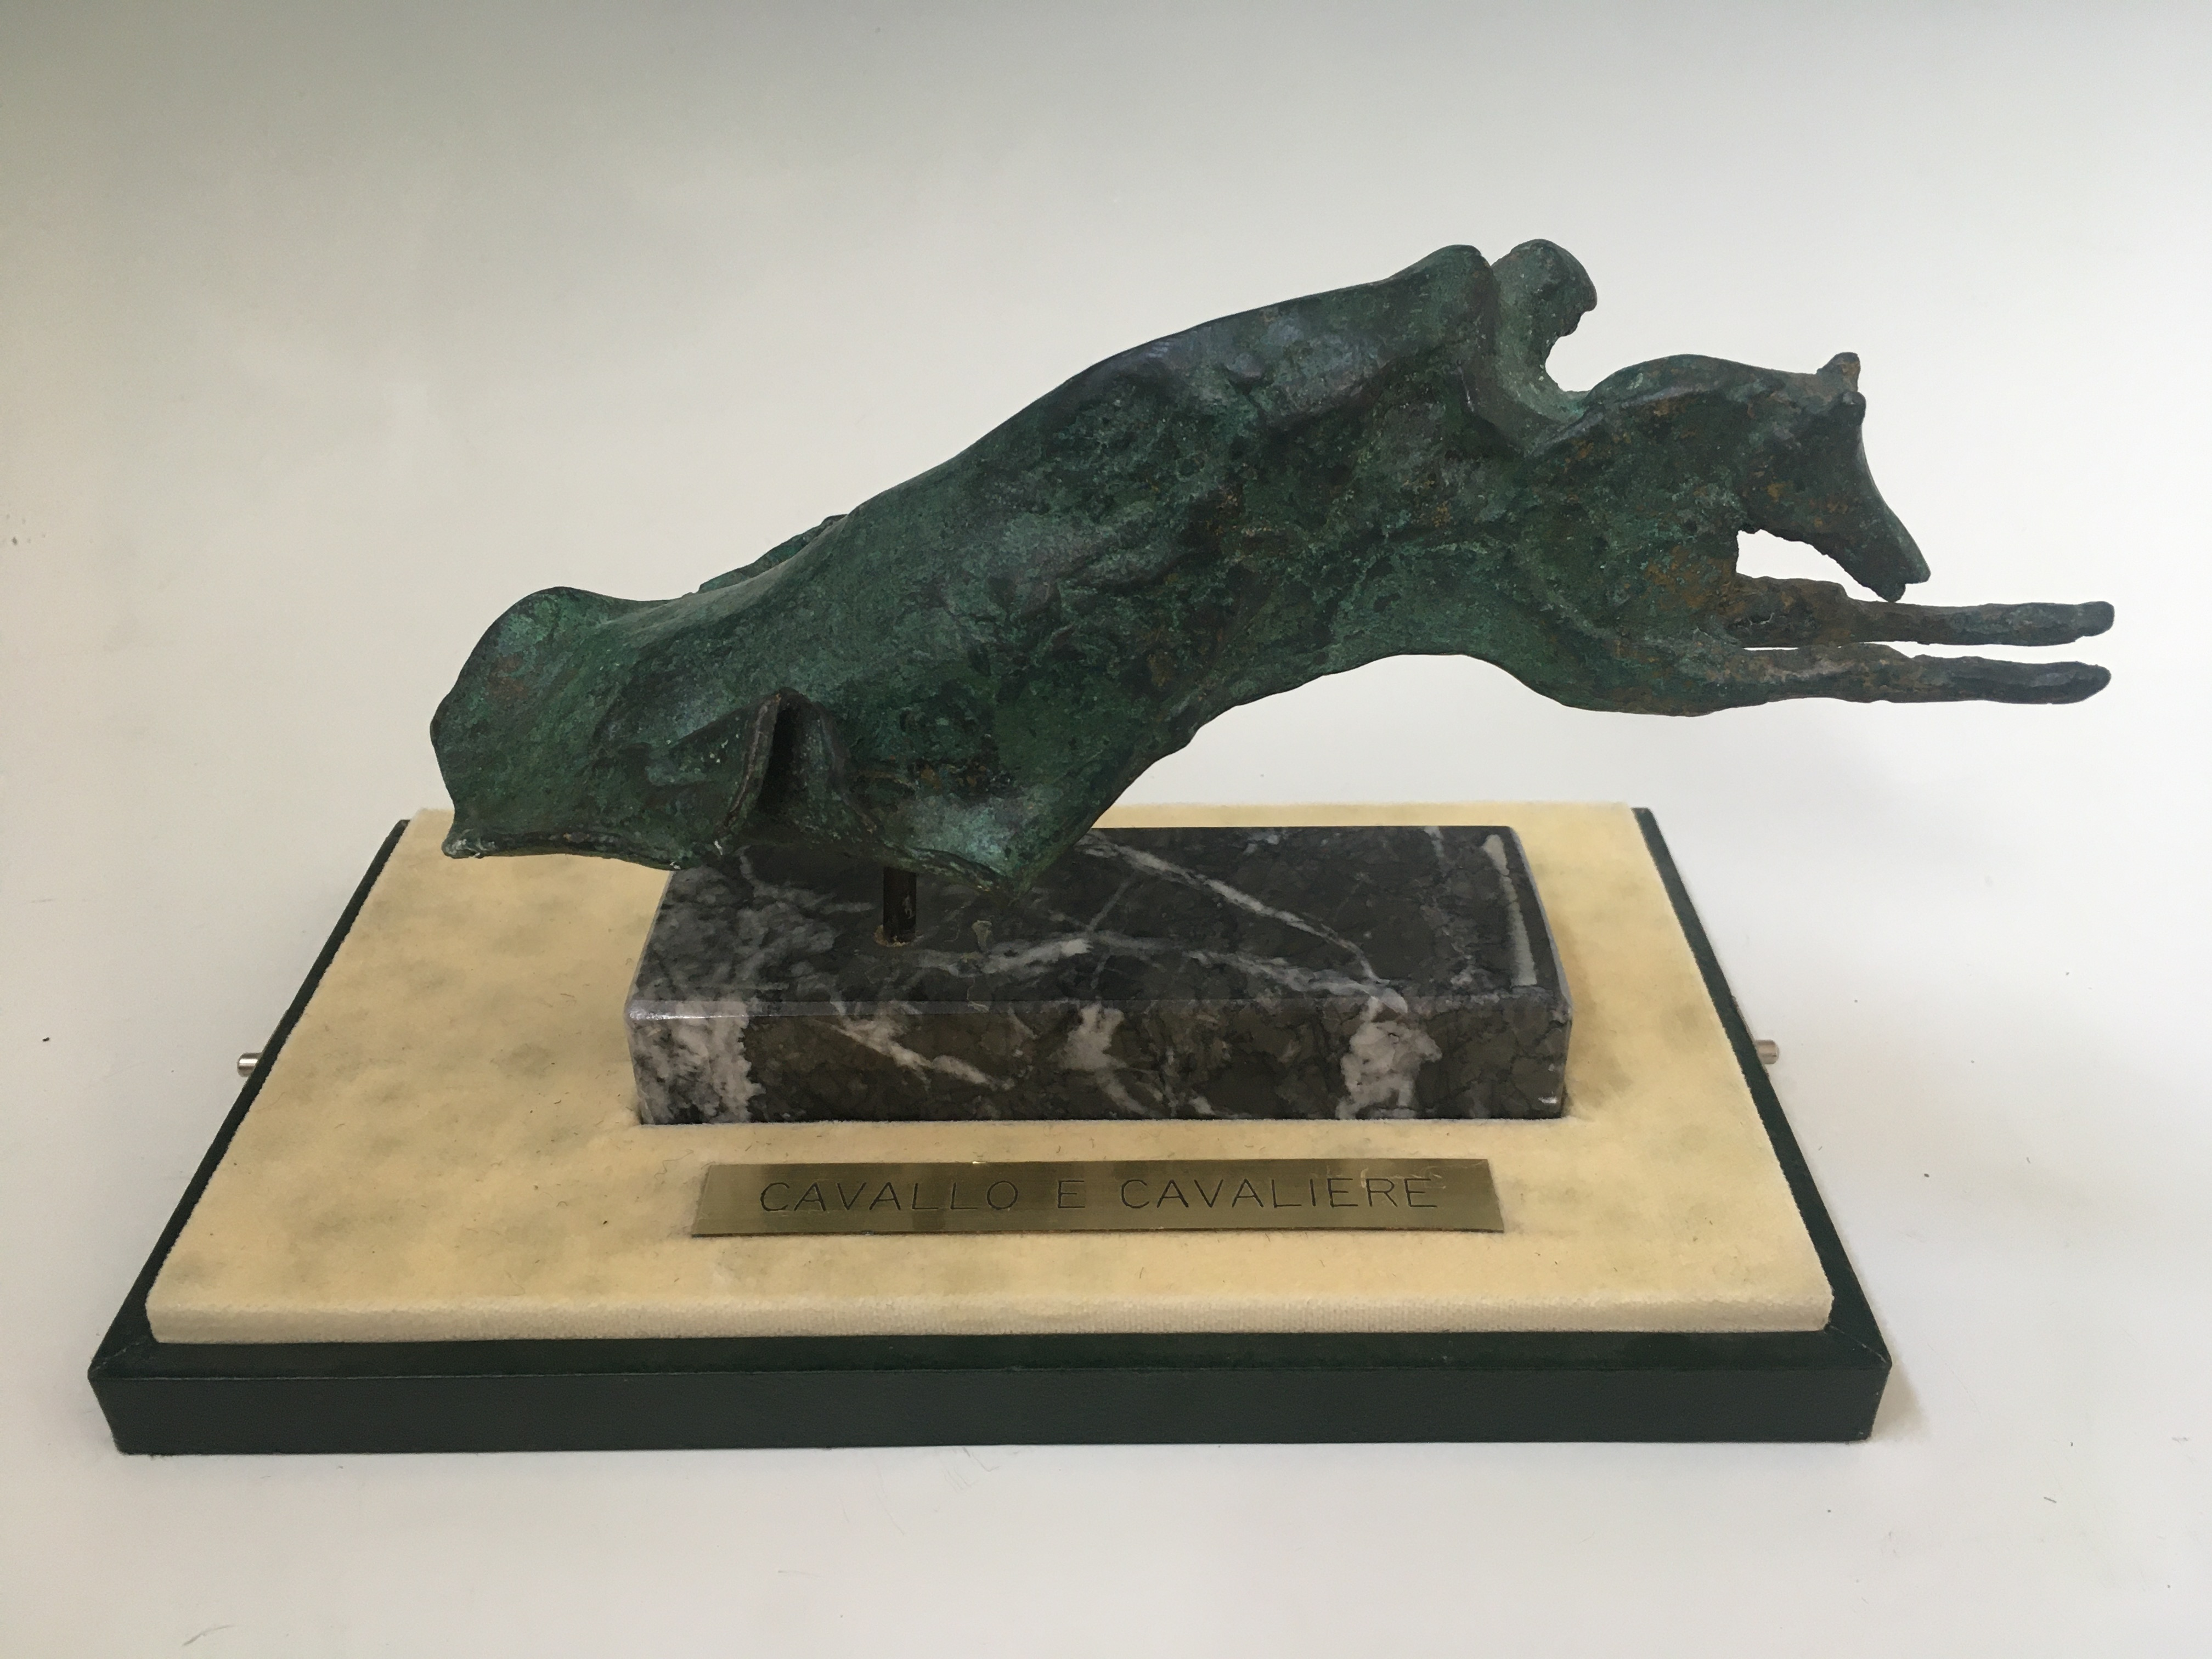 A bronze sculpture of man on horse, mounted on marble, inscribed to mount 'Cavallo E Cavaliere',